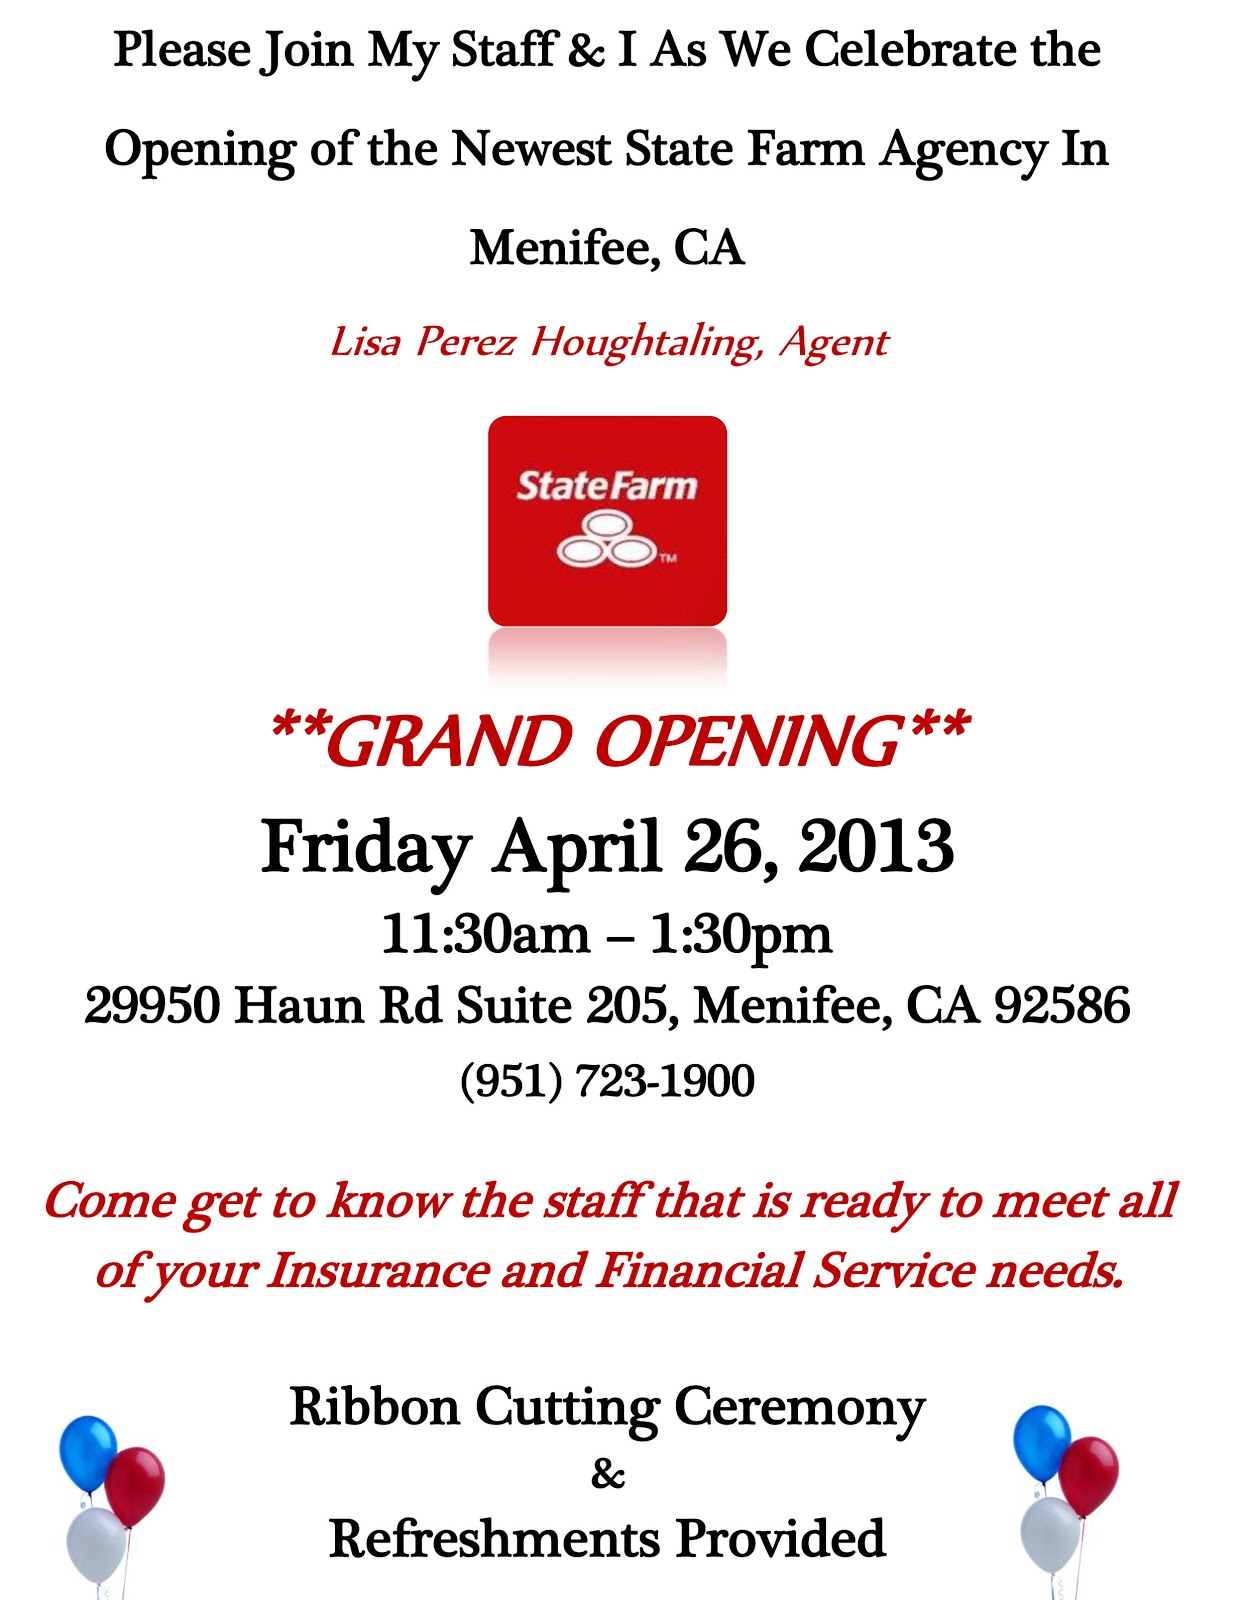 Menifees newest state farm agency grand opening april 26 menifees newest state farm agency grand opening april 26 menifee 247 stopboris Images